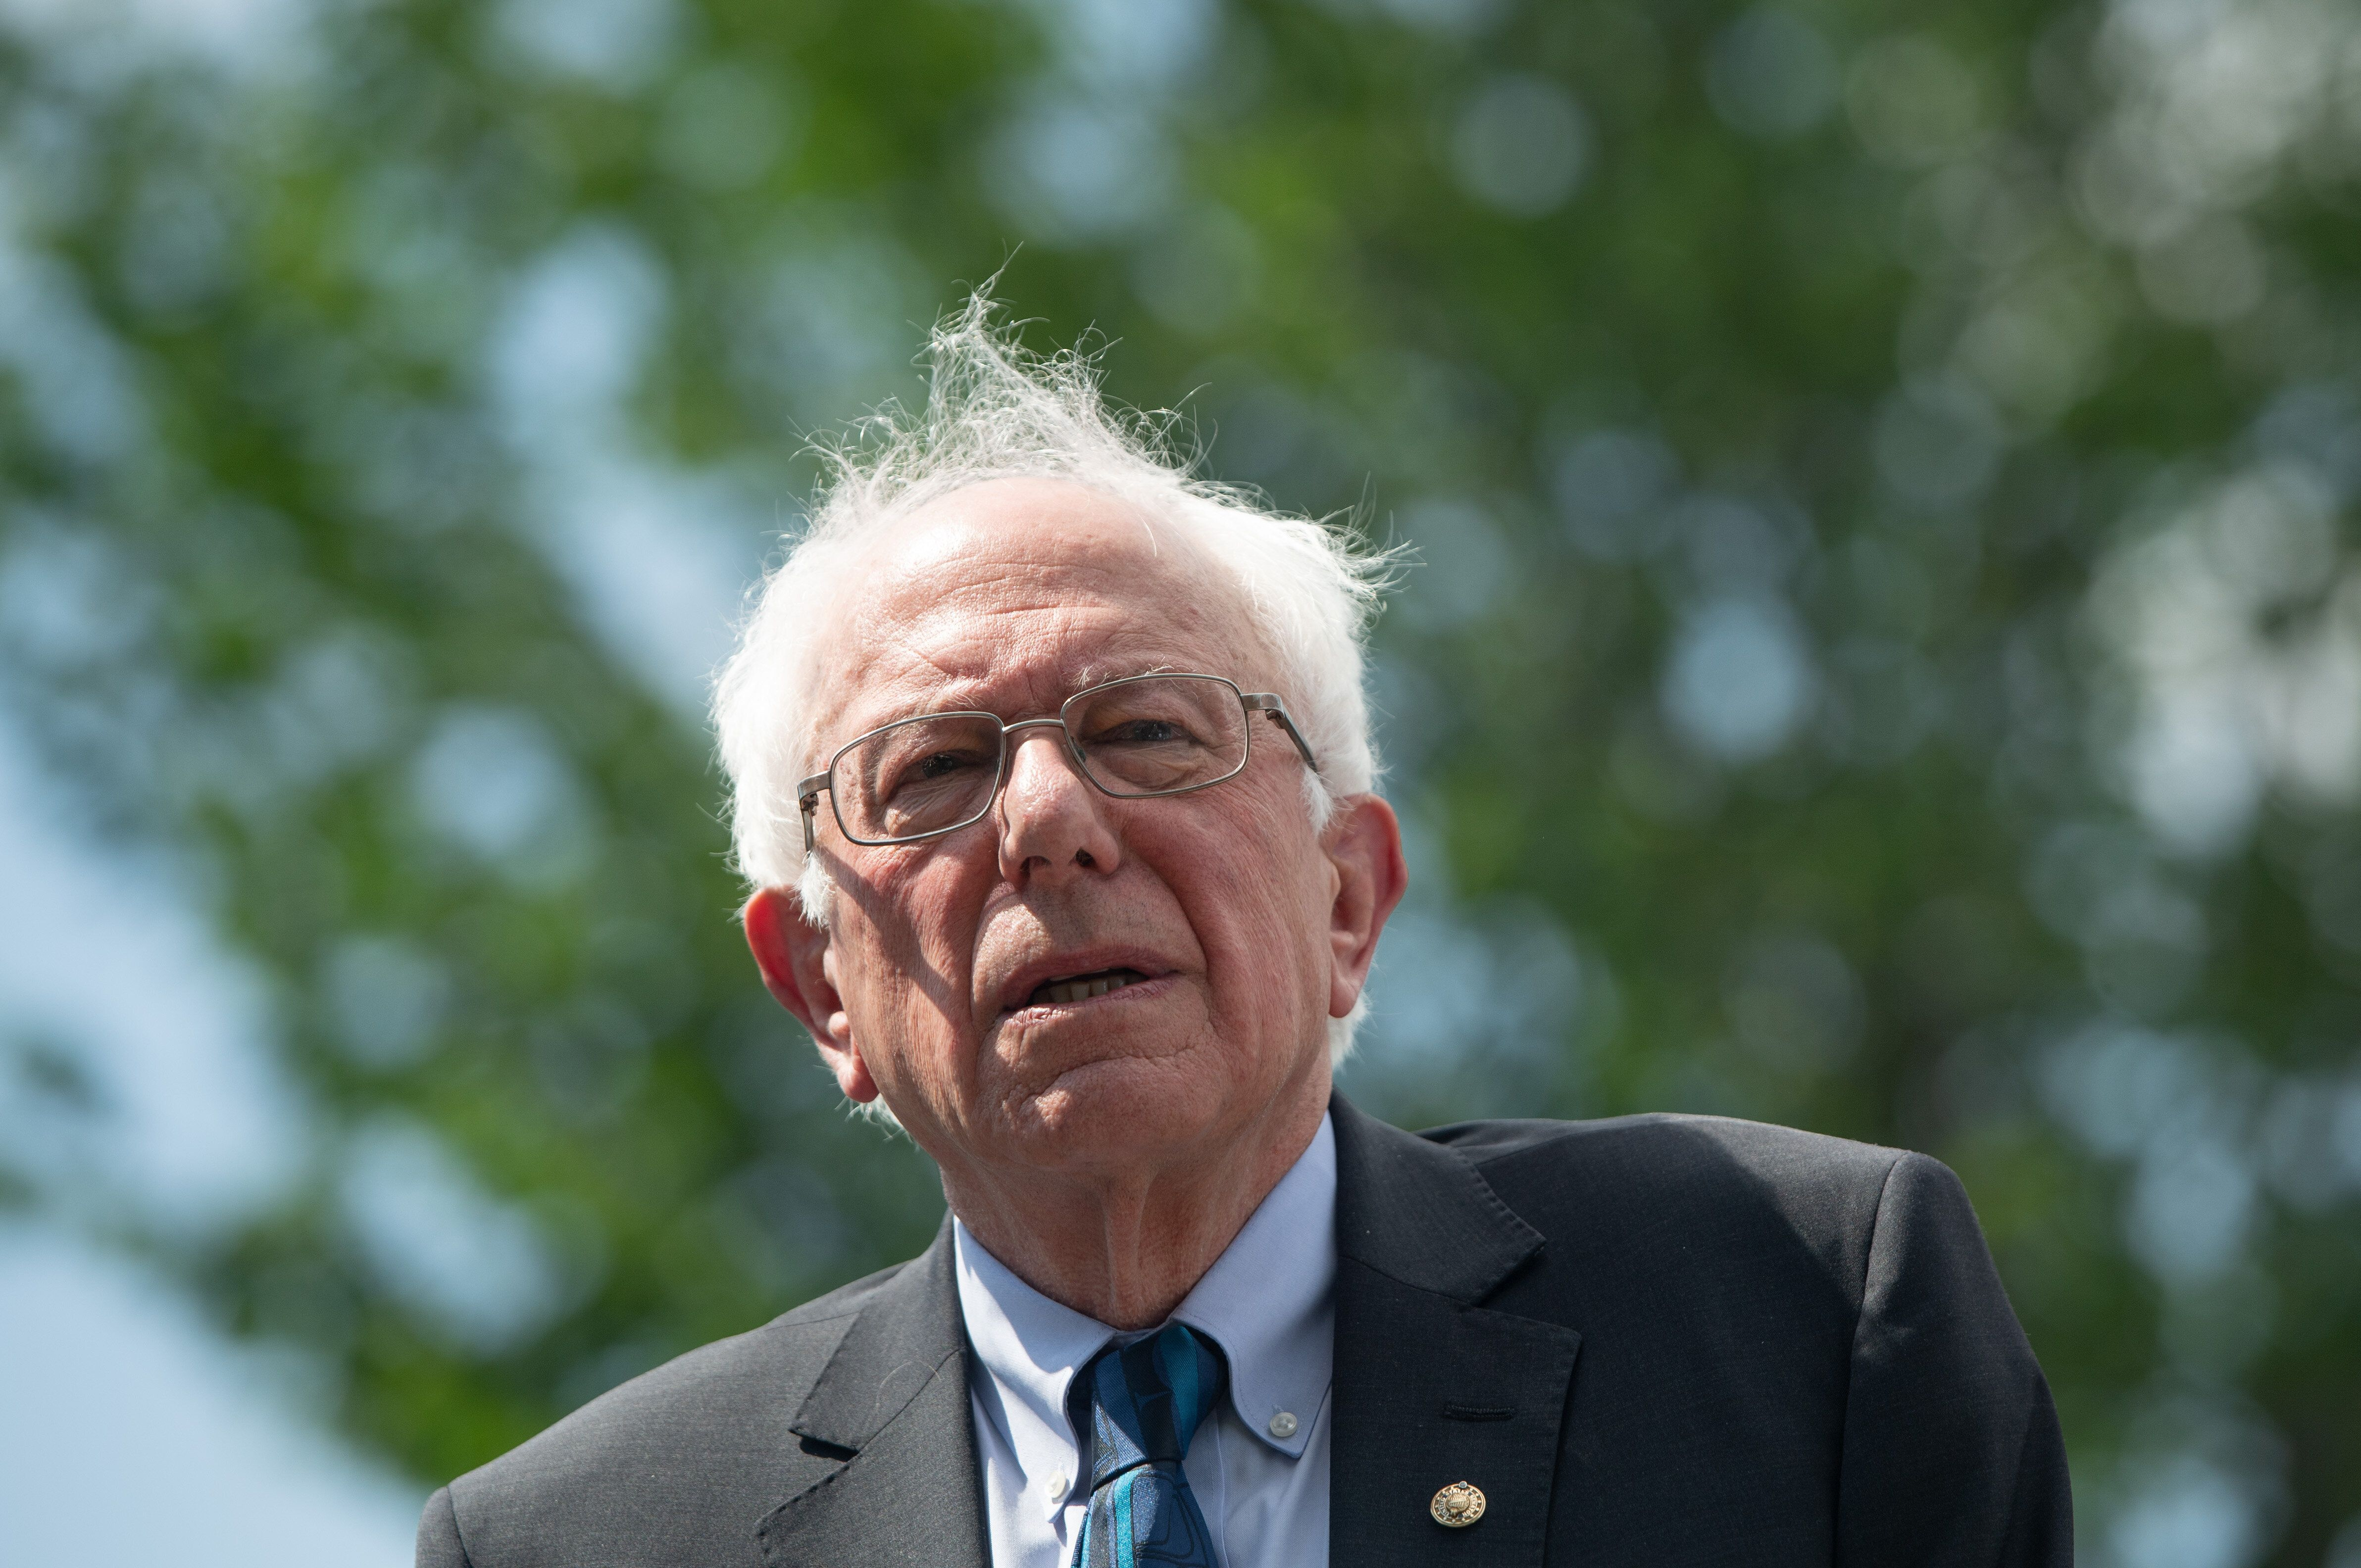 Sanders Suggests Pelosi Should Lay Off ...